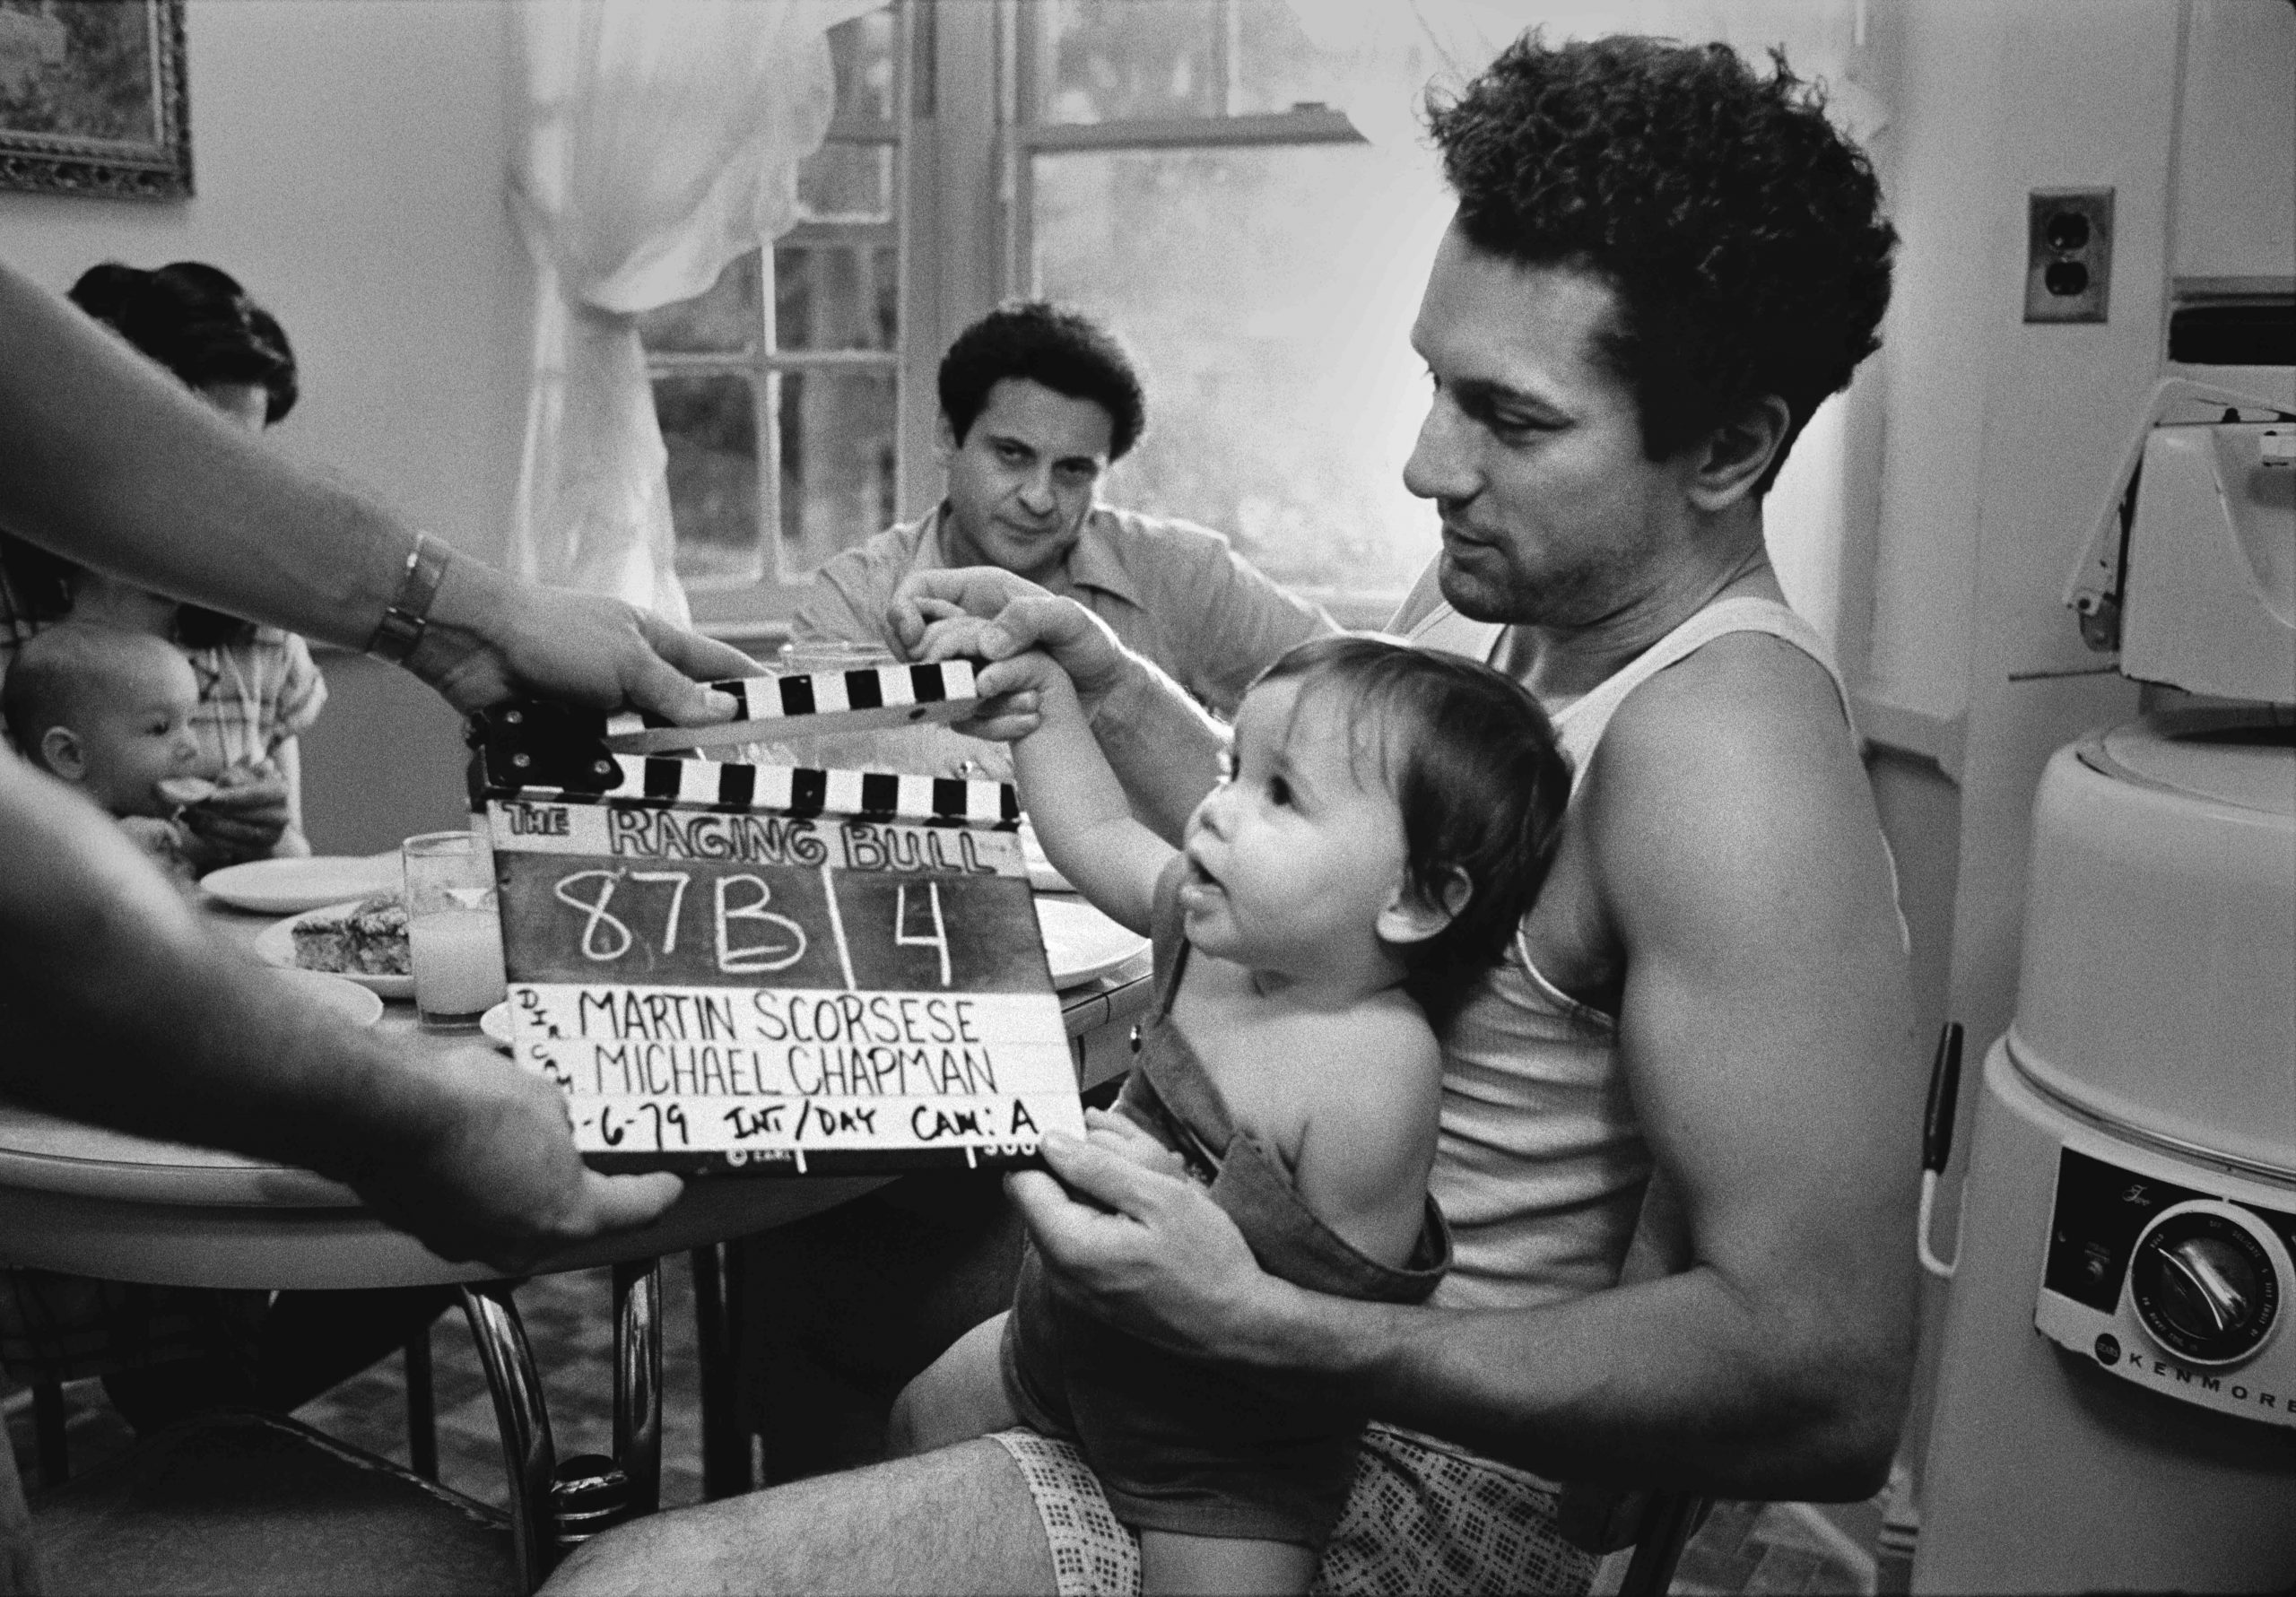 Robert De Niro with baby and clapperboard on the set of Raging Bull (1980)